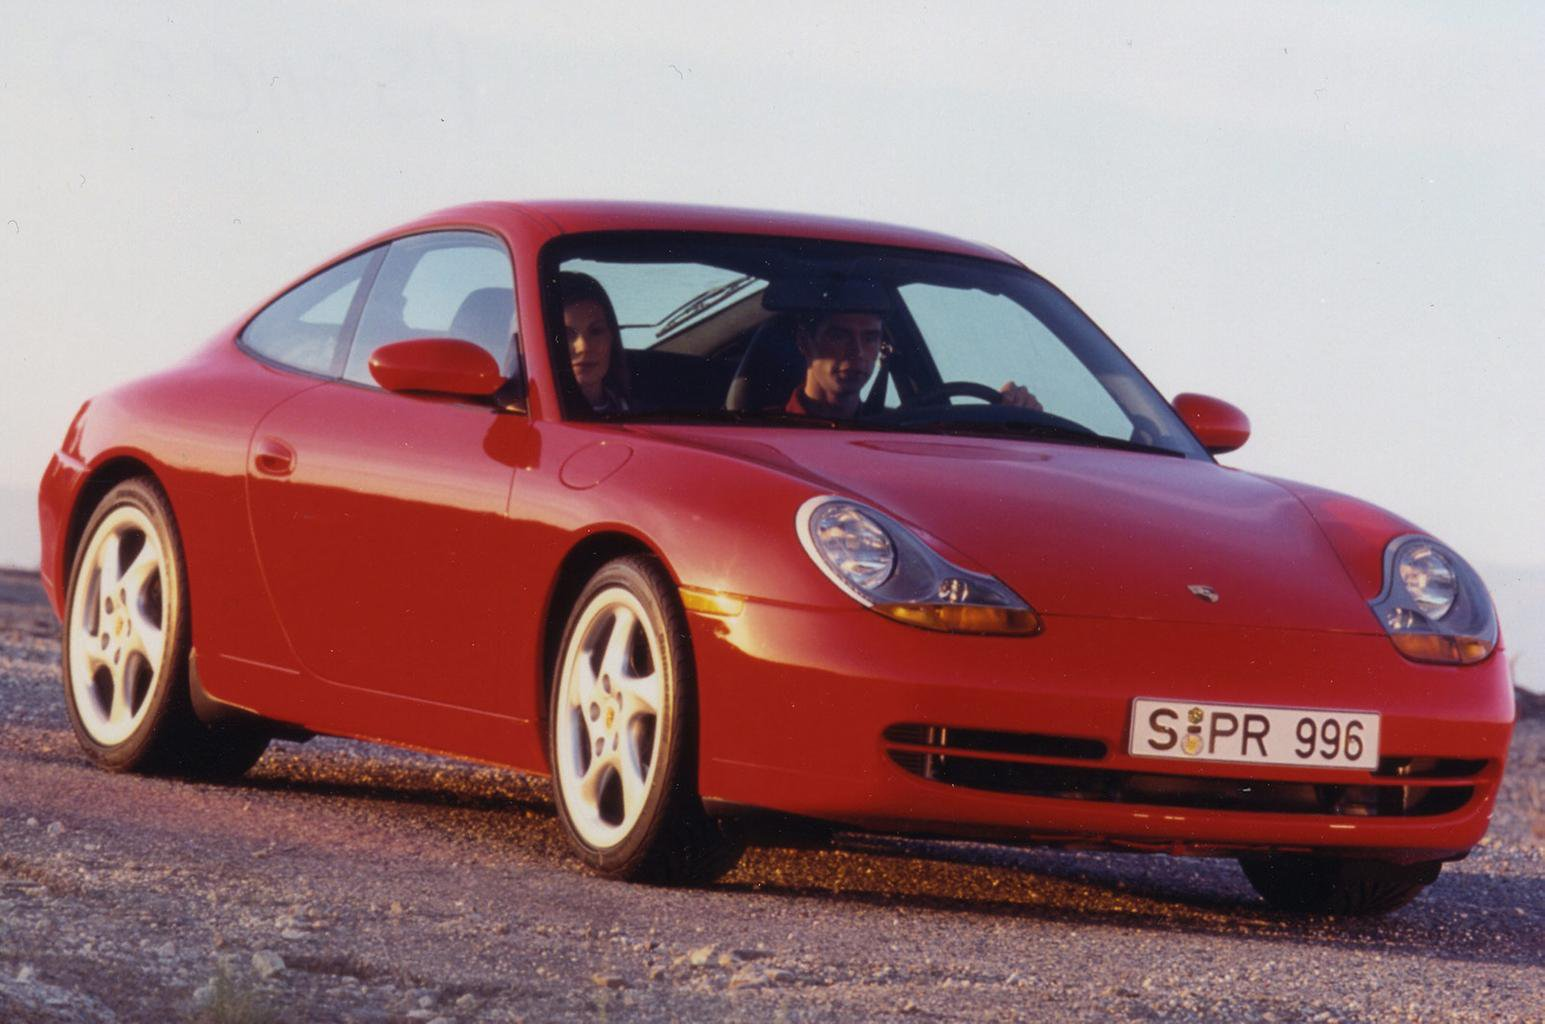 10 reasons to buy a Porsche 911